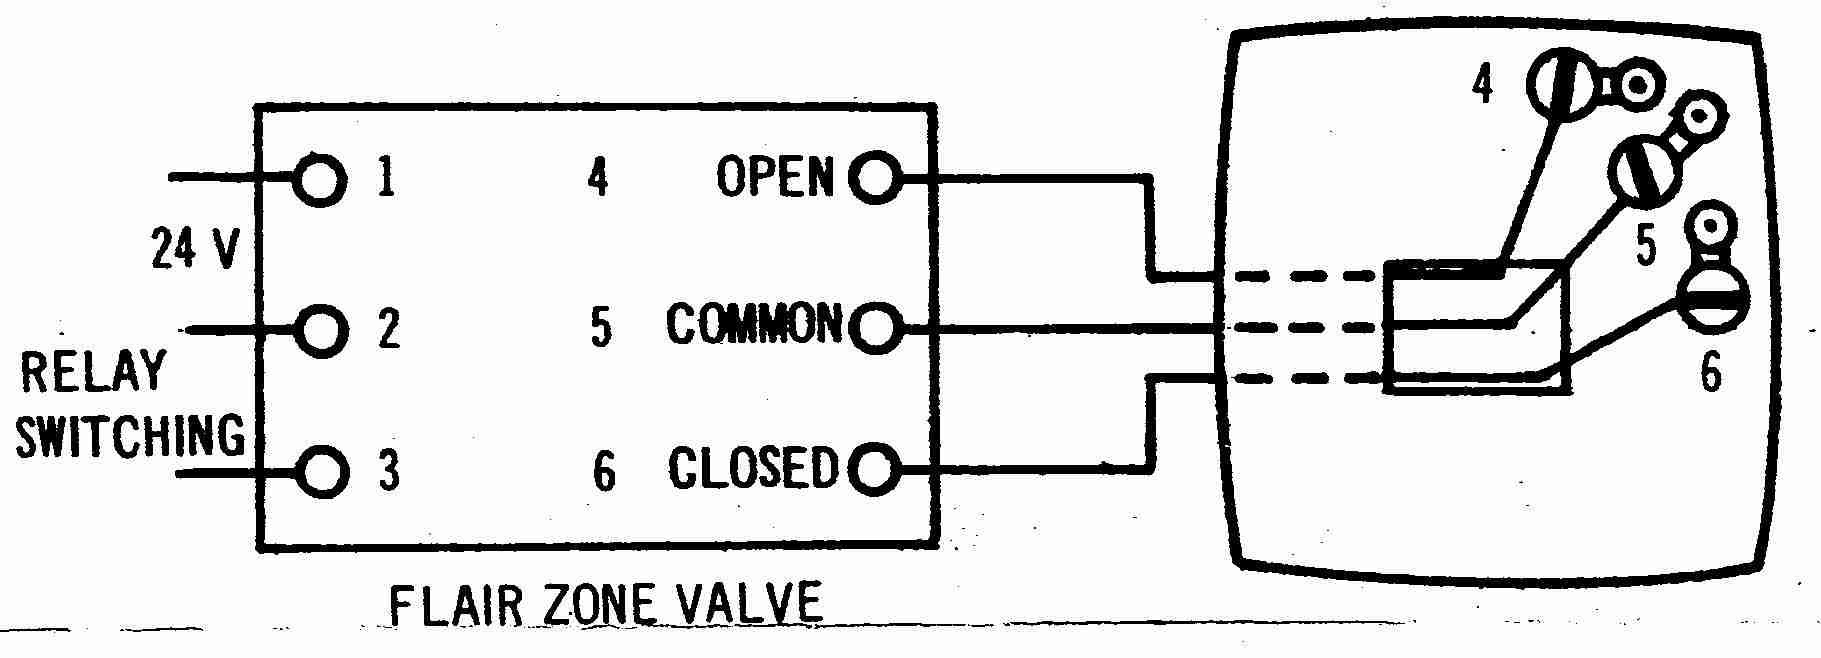 35 Kenwood Kdc 352u Wiring Diagram